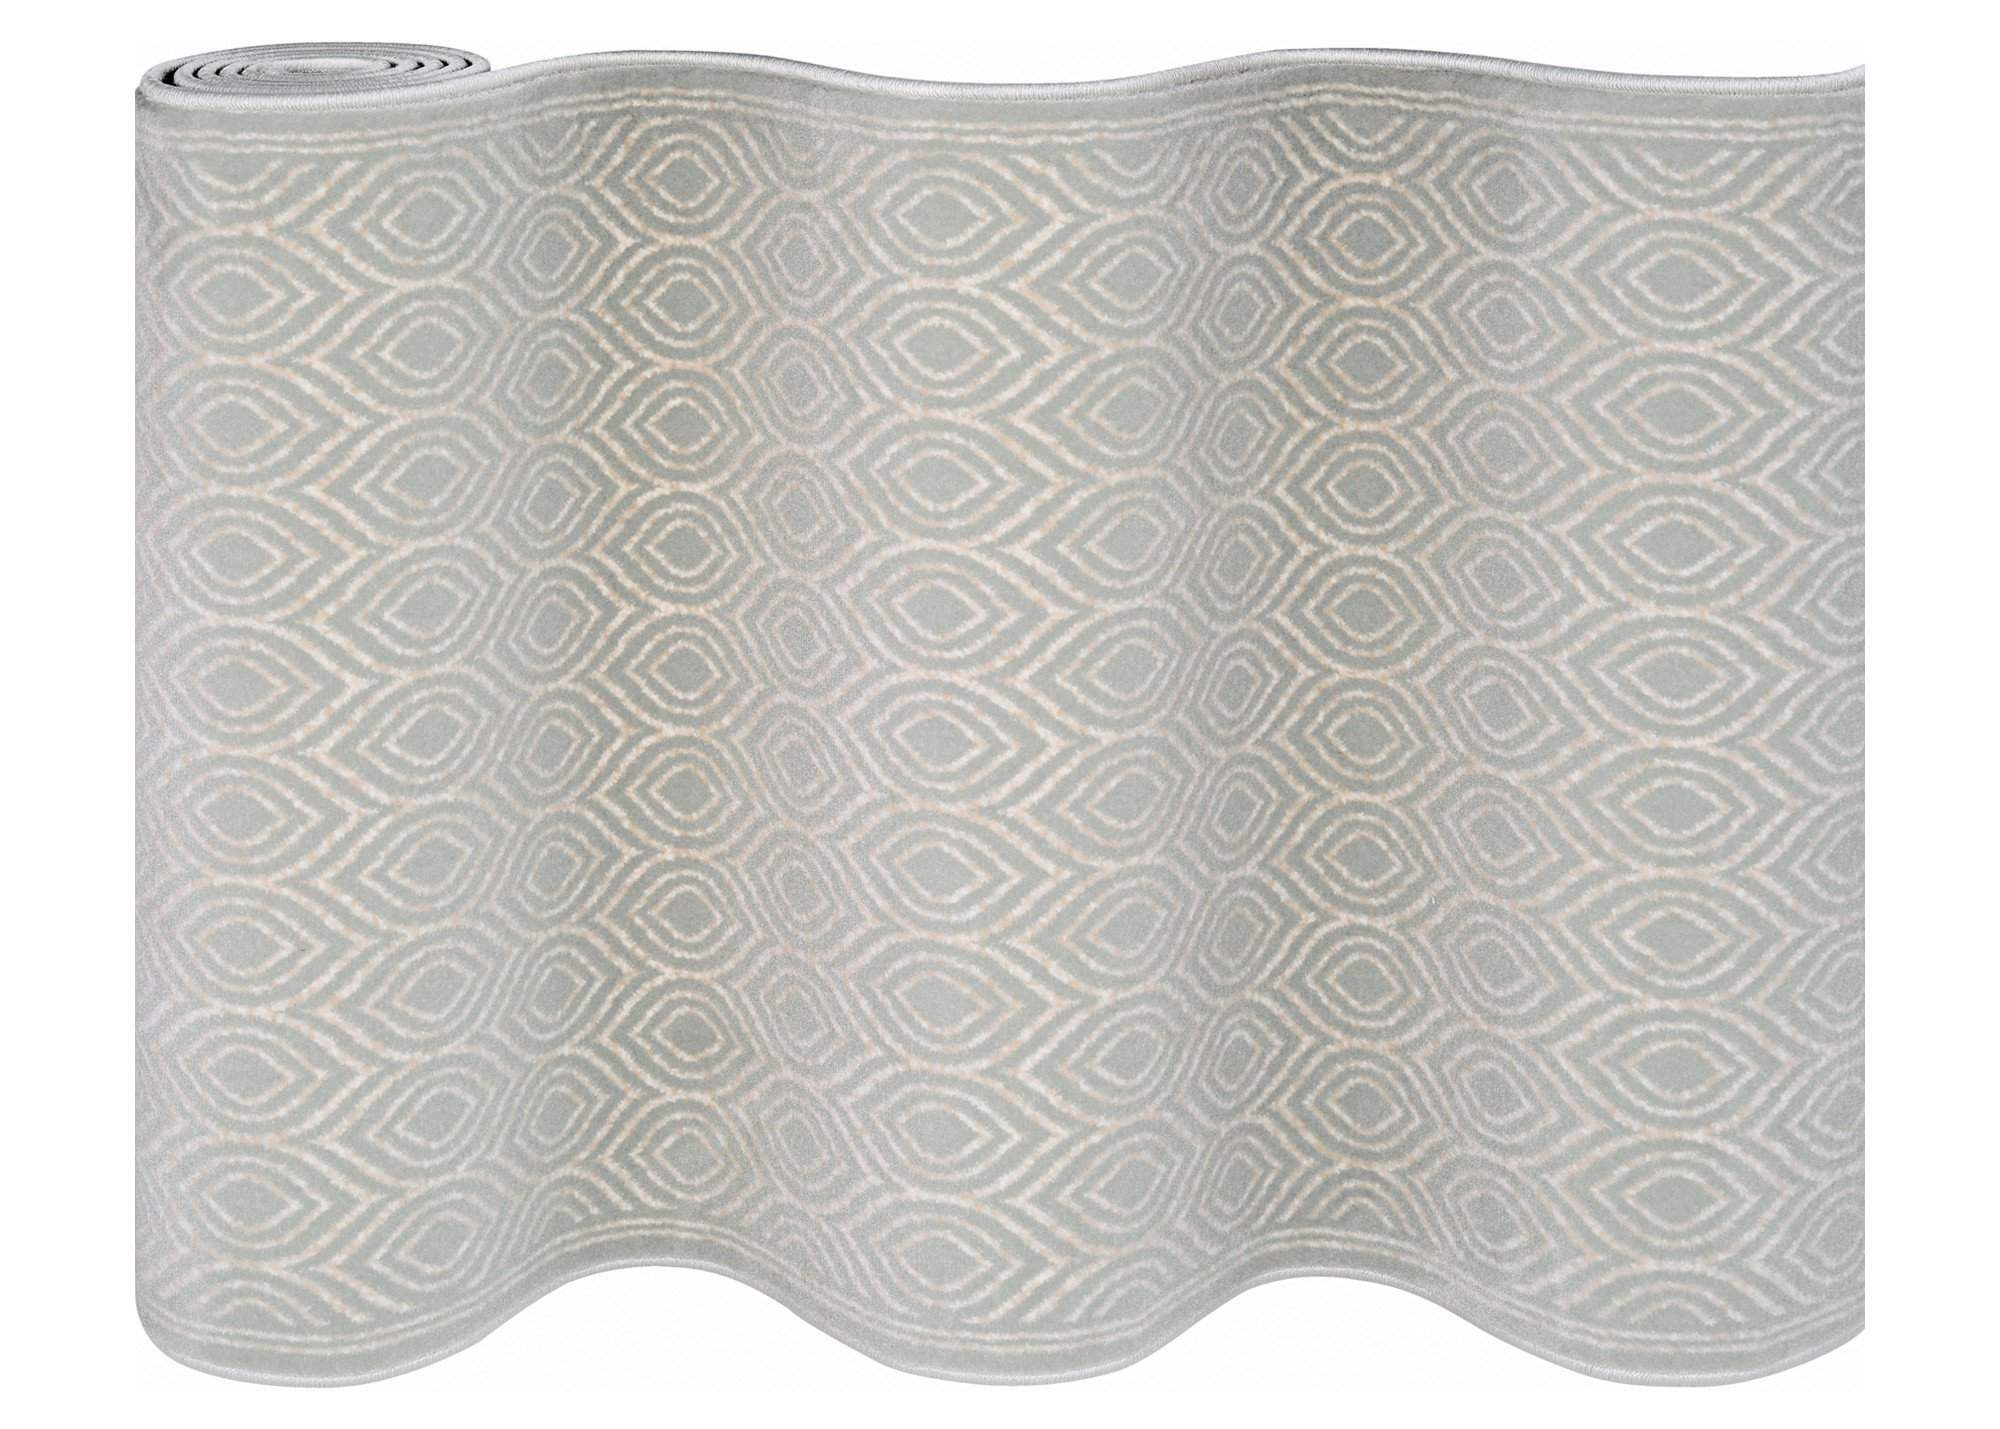 Maeve Seafoam Staircase Runner-Staircase Runner-Rug Shop and More